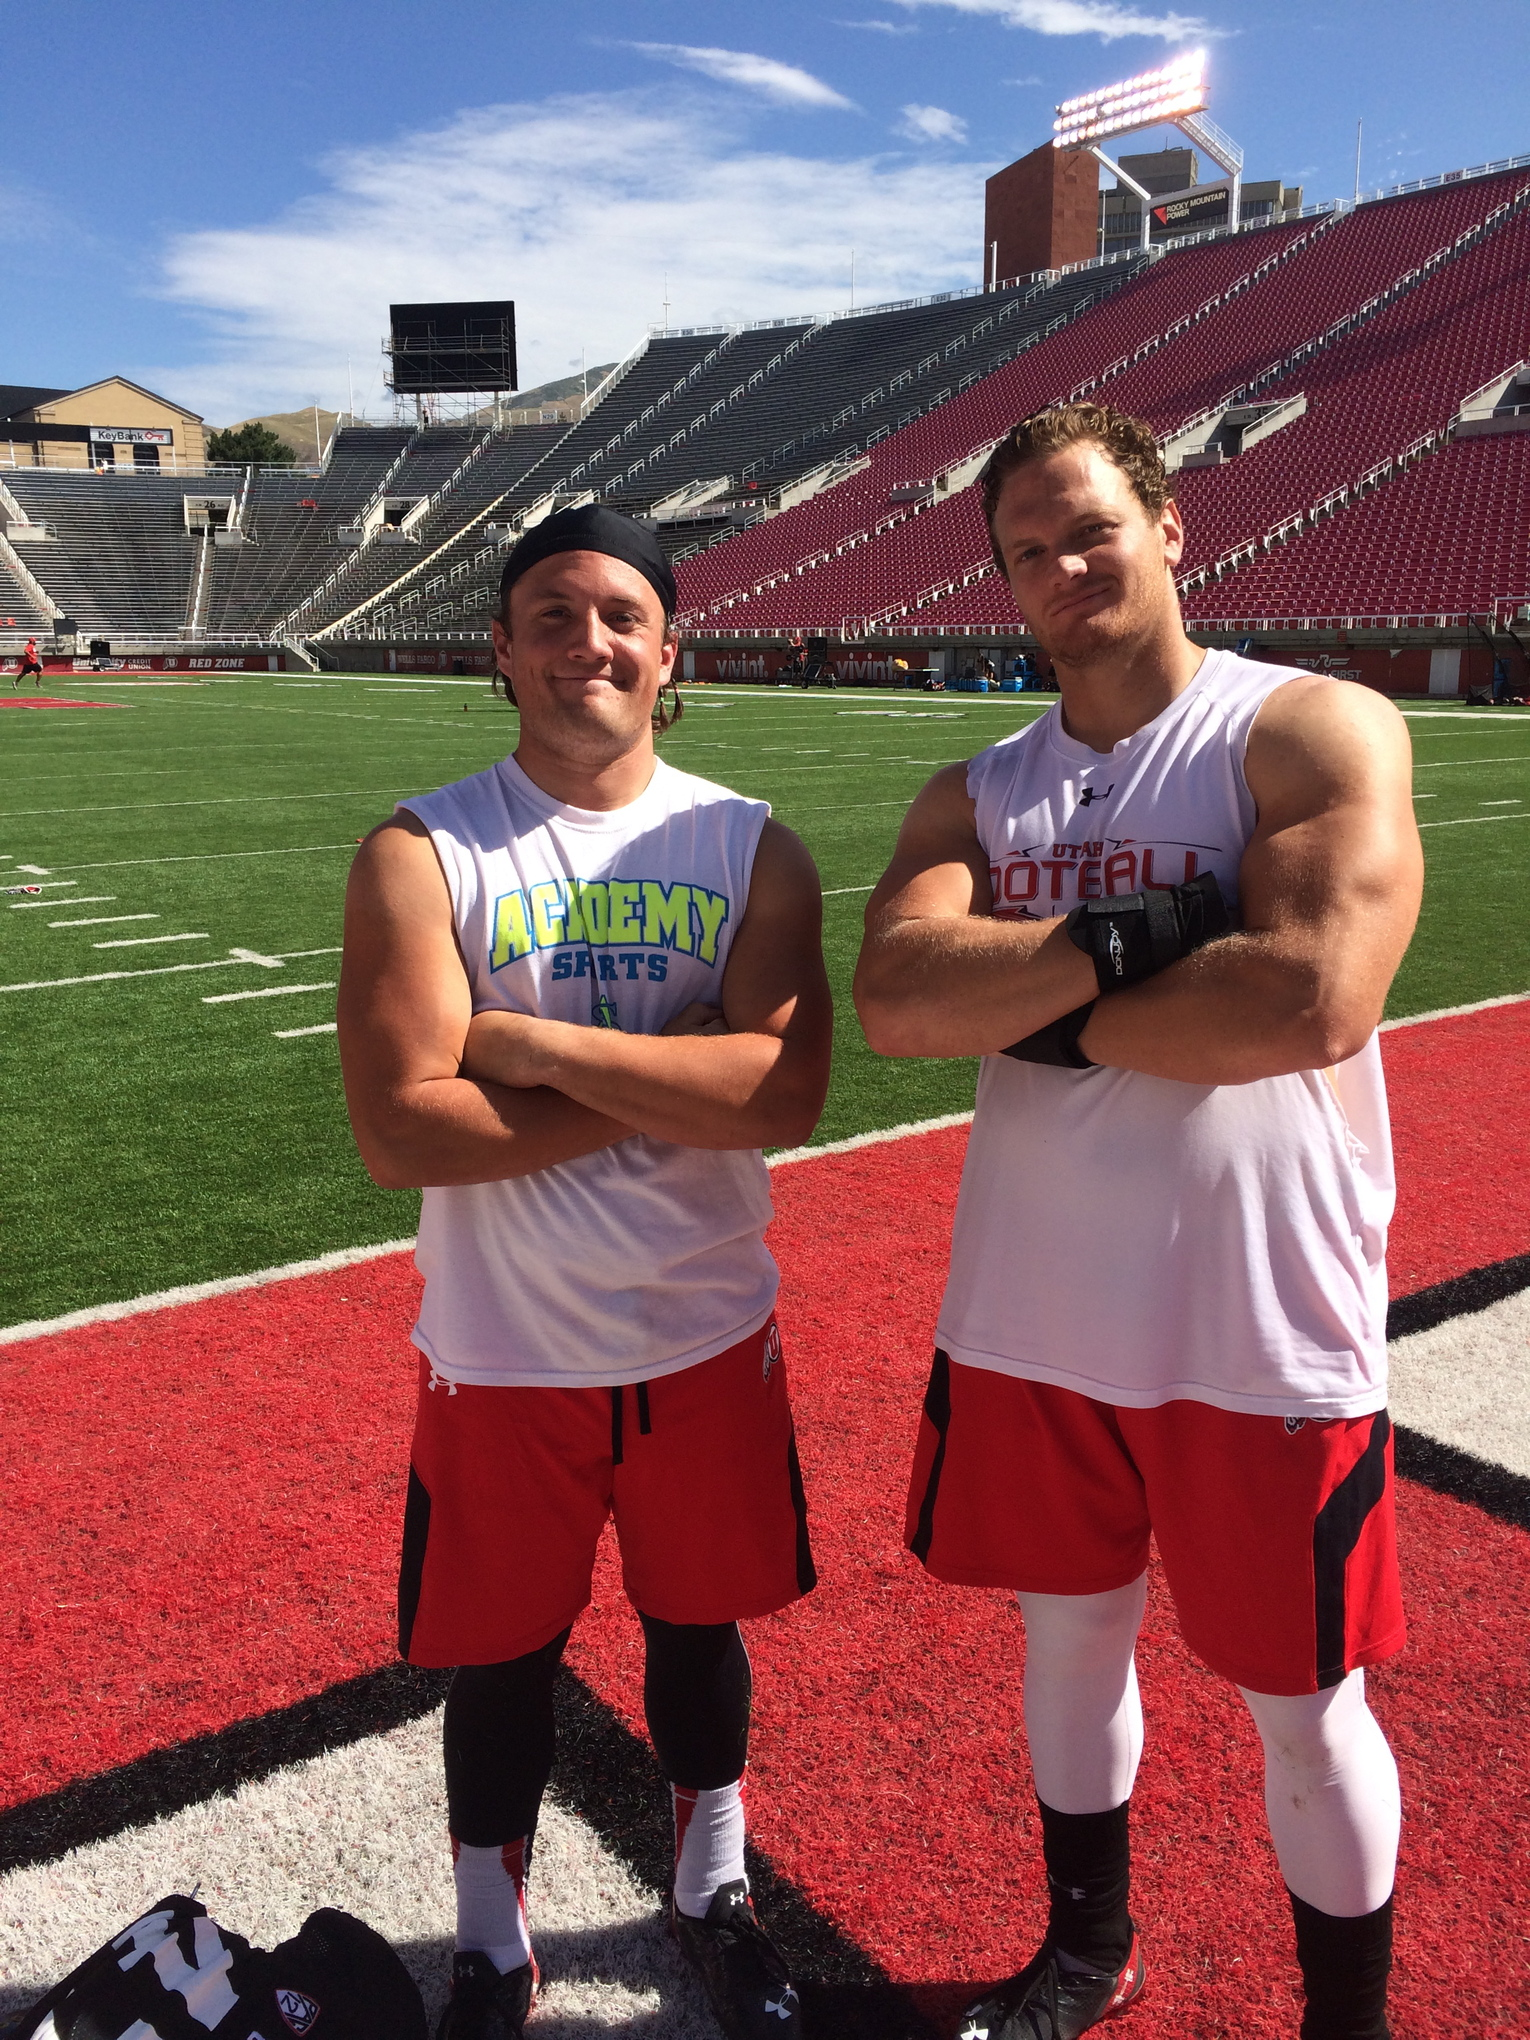 Linebackers Alex and Jason Whittingham know all about the family environment on the Utah football team, being the son and nephew of head coach Kyle.